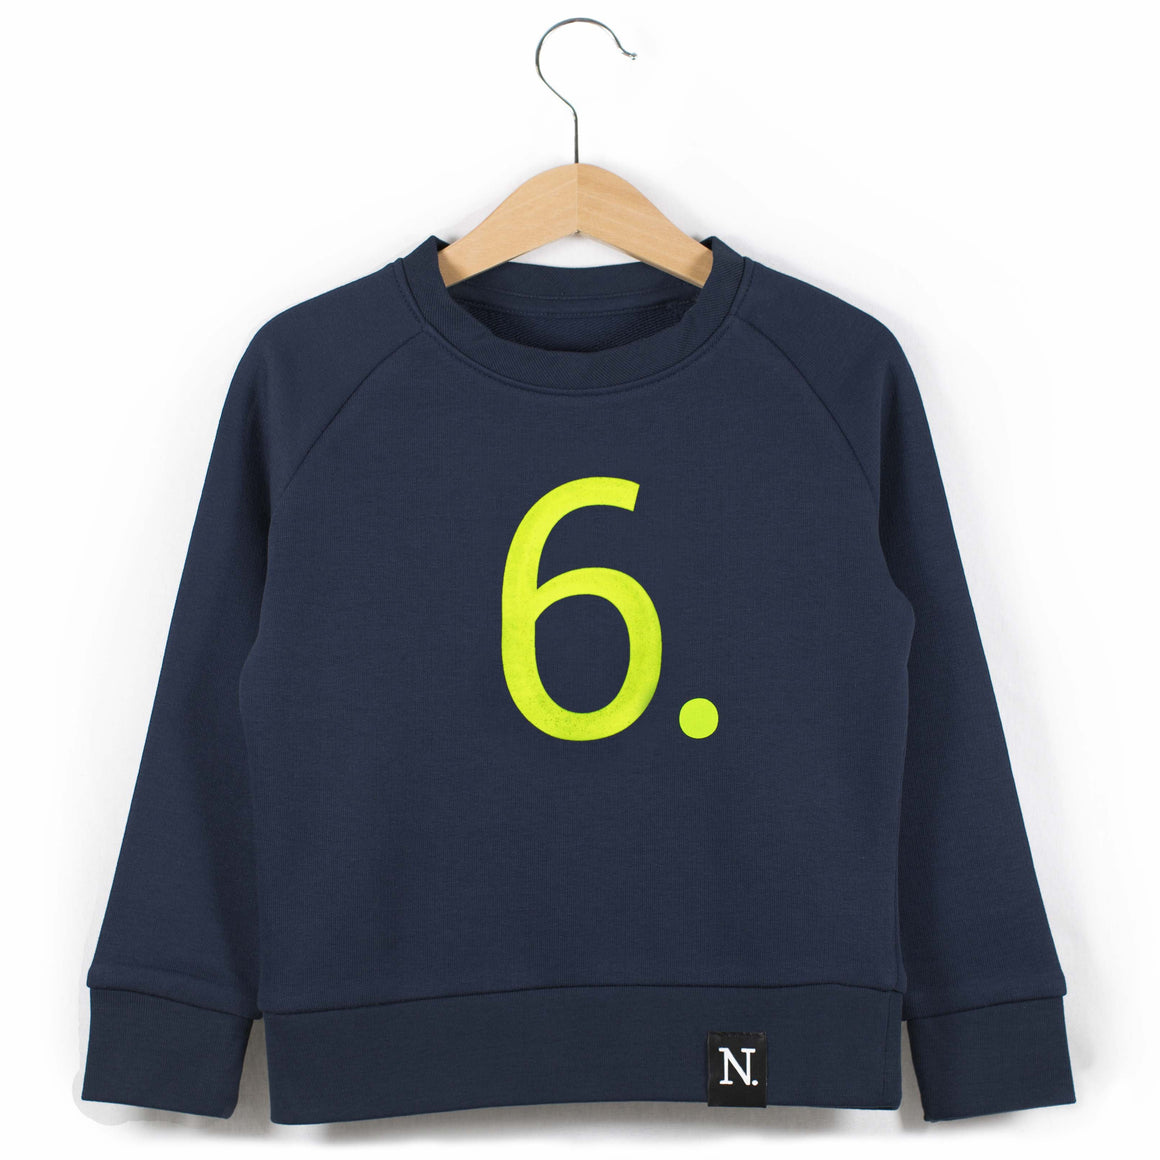 The Number 6 navy sweatshirt front